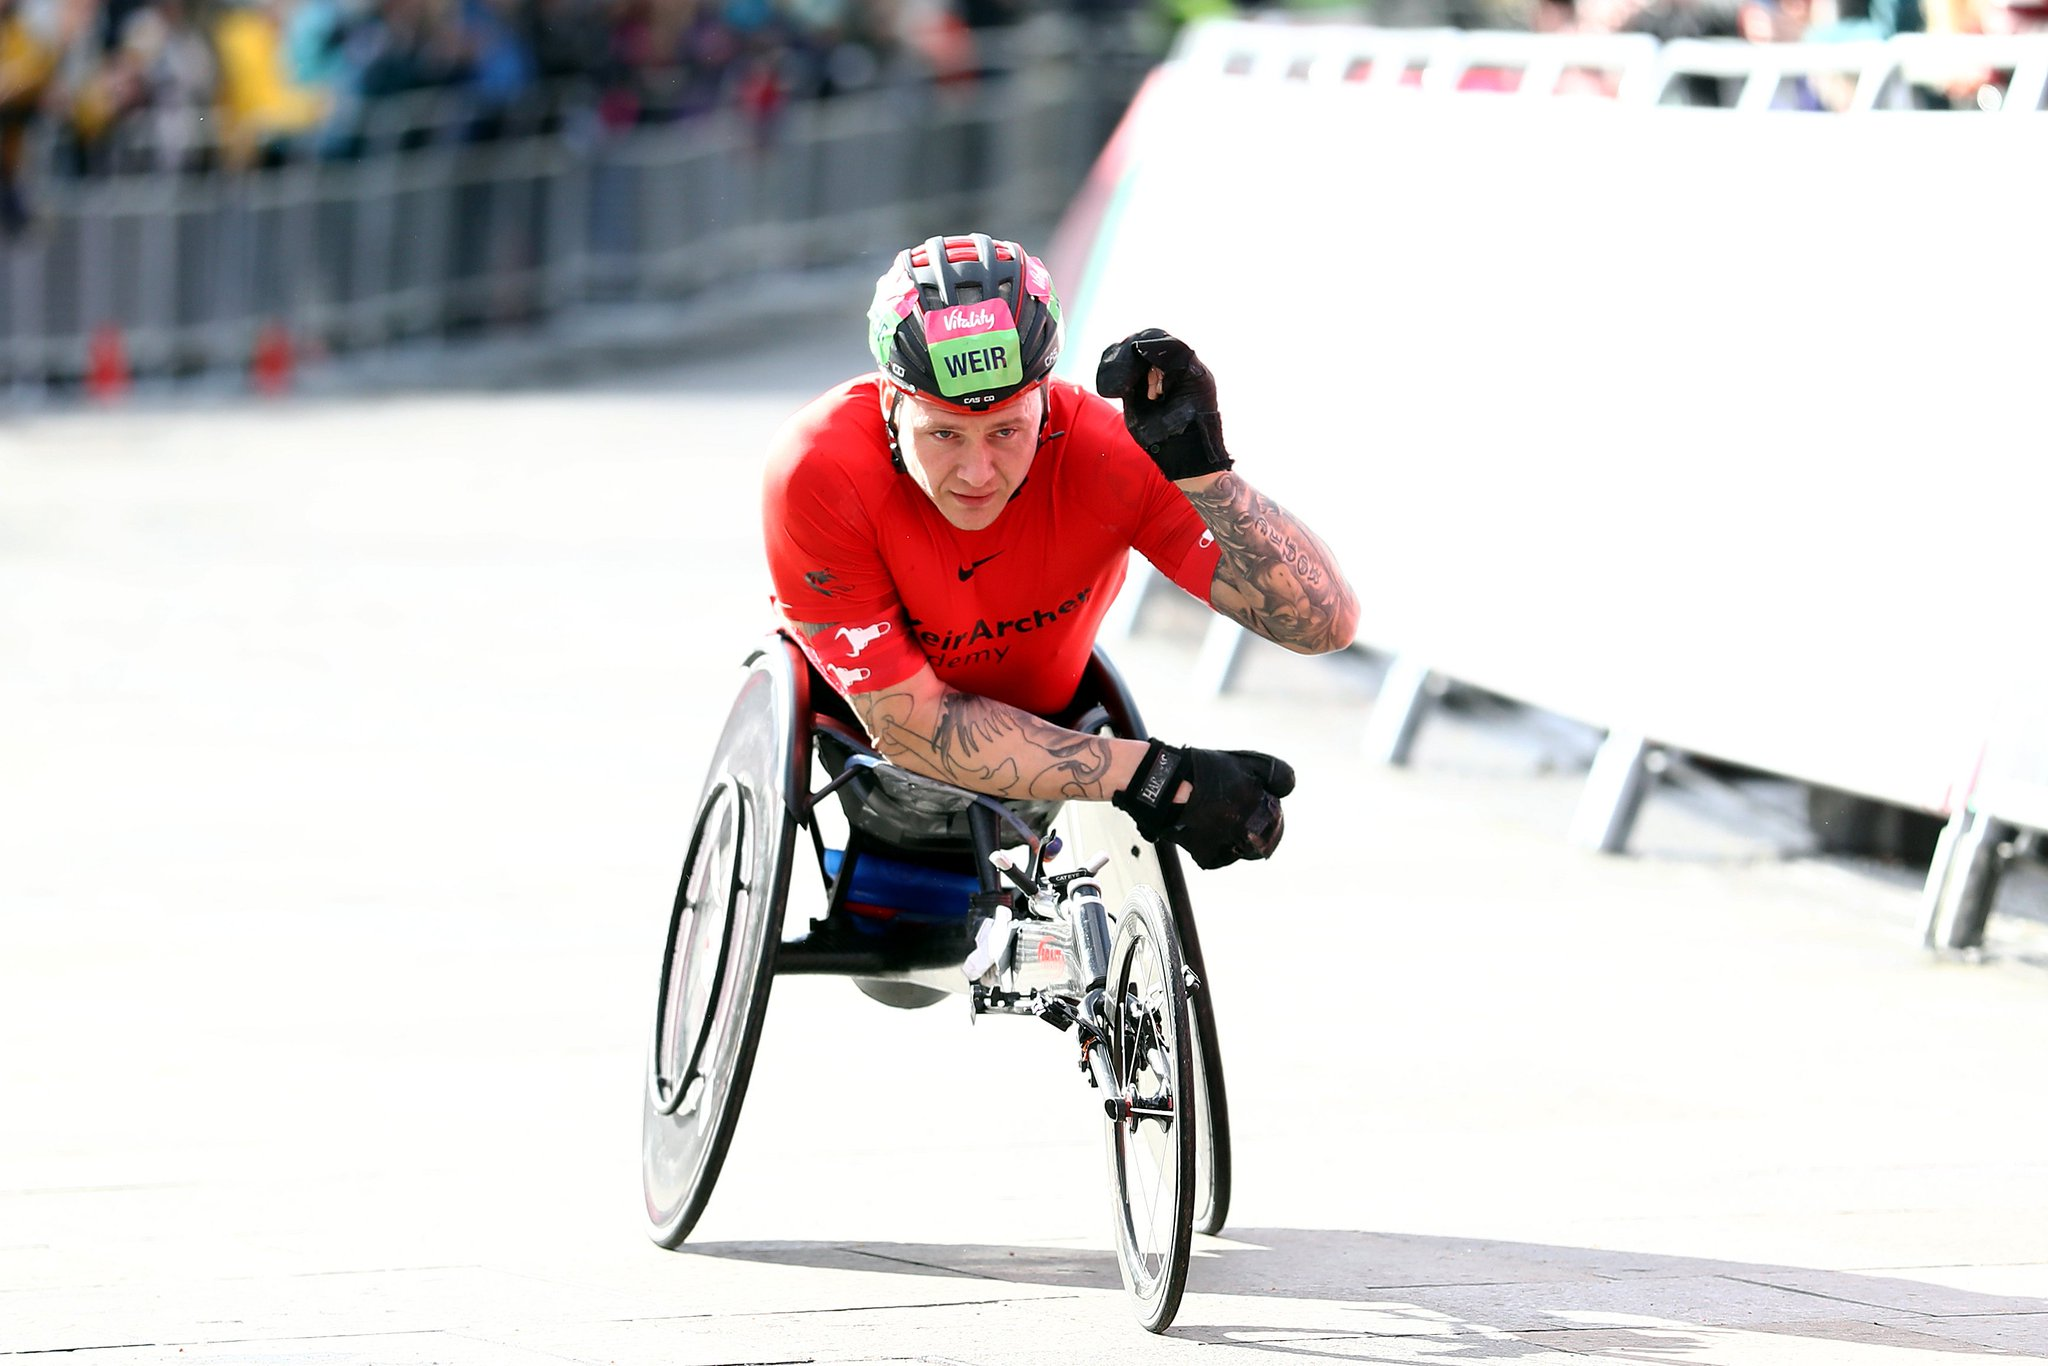 It's an EIGHTH @Great_Run wheelchair title for @davidweir2012 🇬🇧  He raced away from Canadian Brent Lakatos to cross the line first in South Shields 🏆  #GNR19 https://t.co/8H4SJ2UMdY